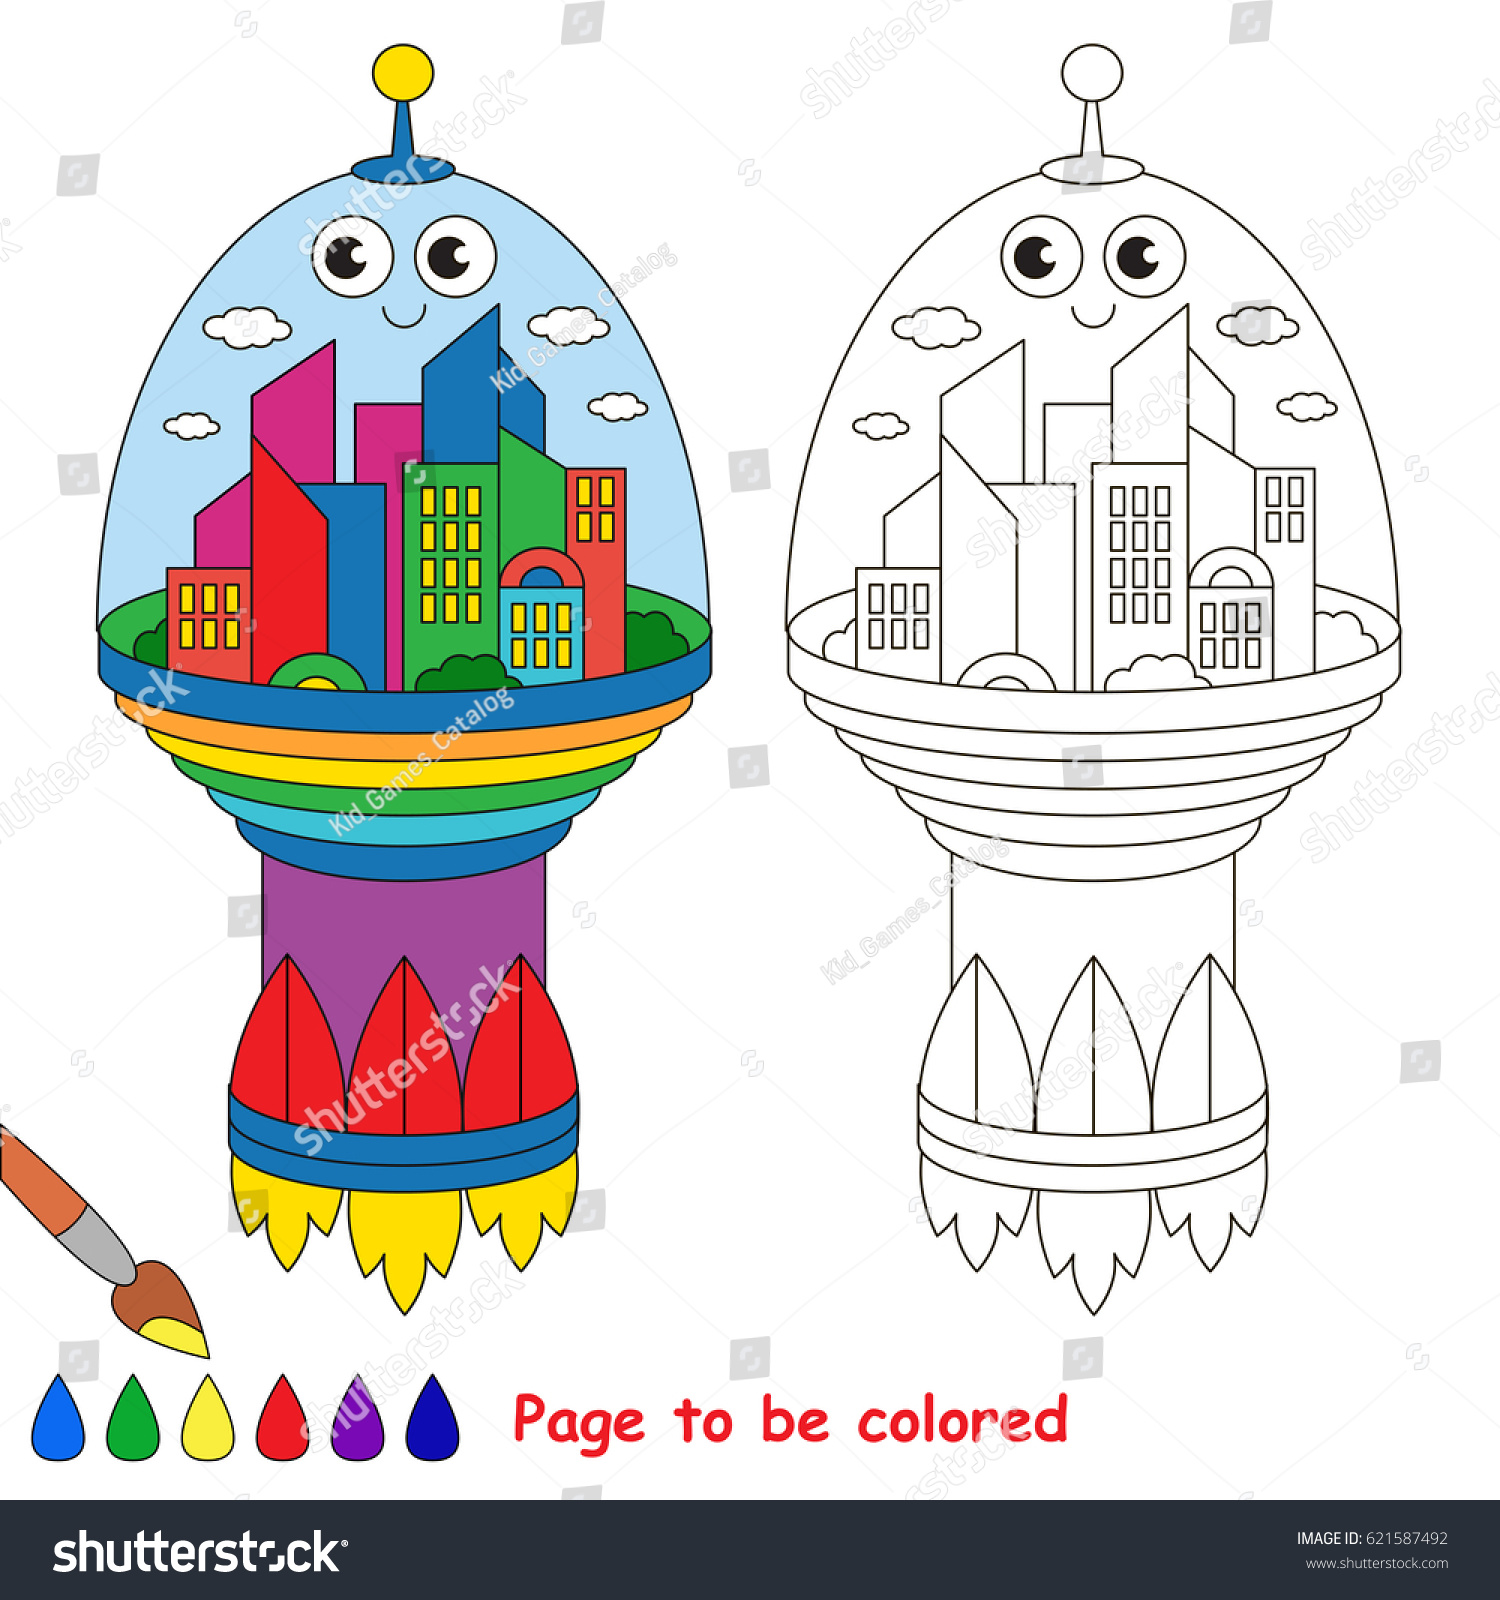 stock vector space city to be colored the coloring book for preschool kids with easy educational gaming level